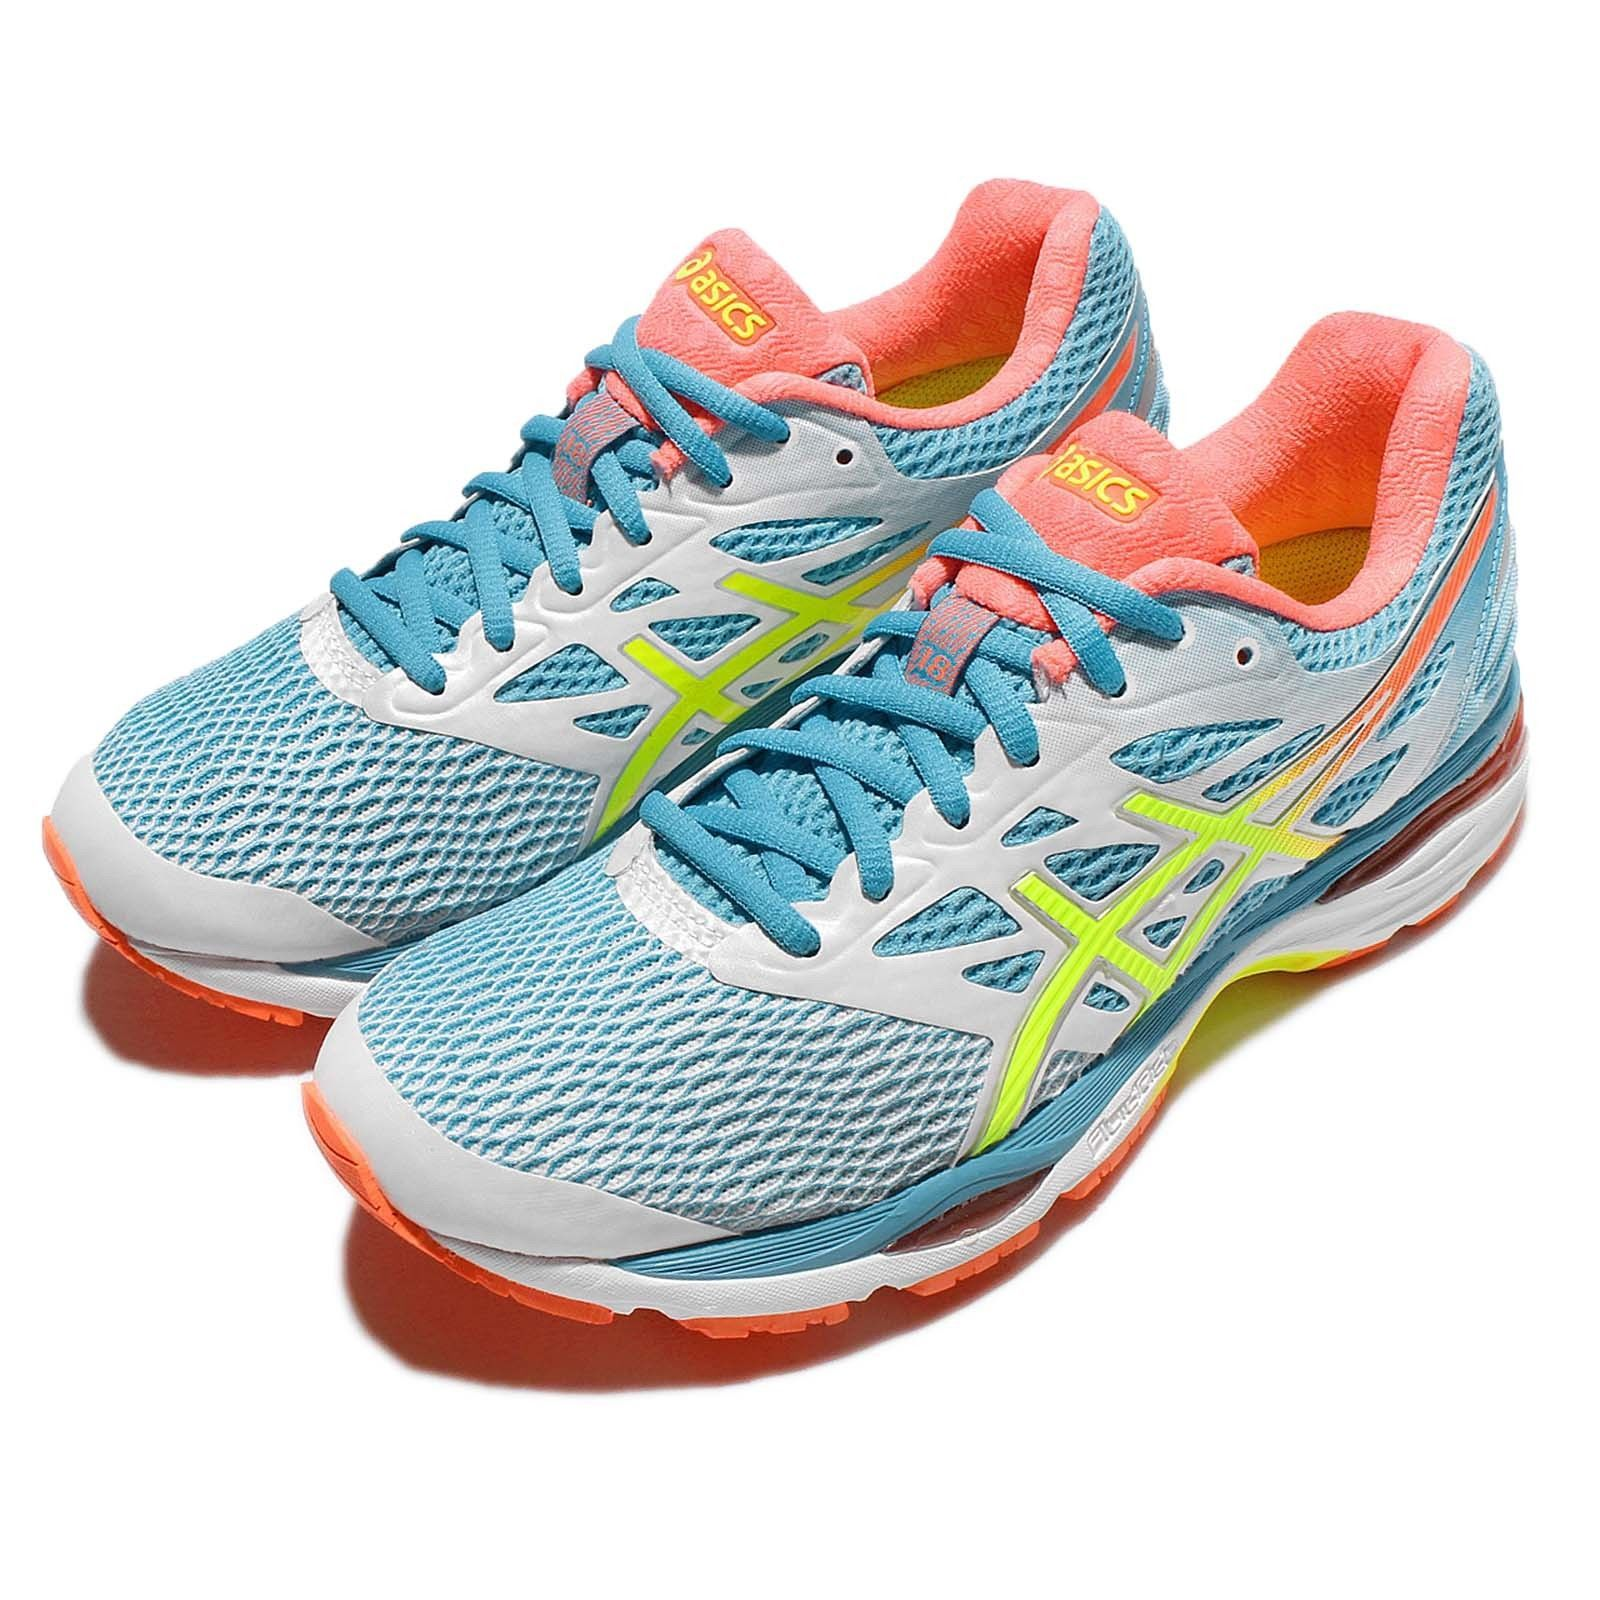 415e26b05340 Asics Gel-Cumulus 18 Blue Yellow Womens Running Shoes Sneakers T6C8N-0107